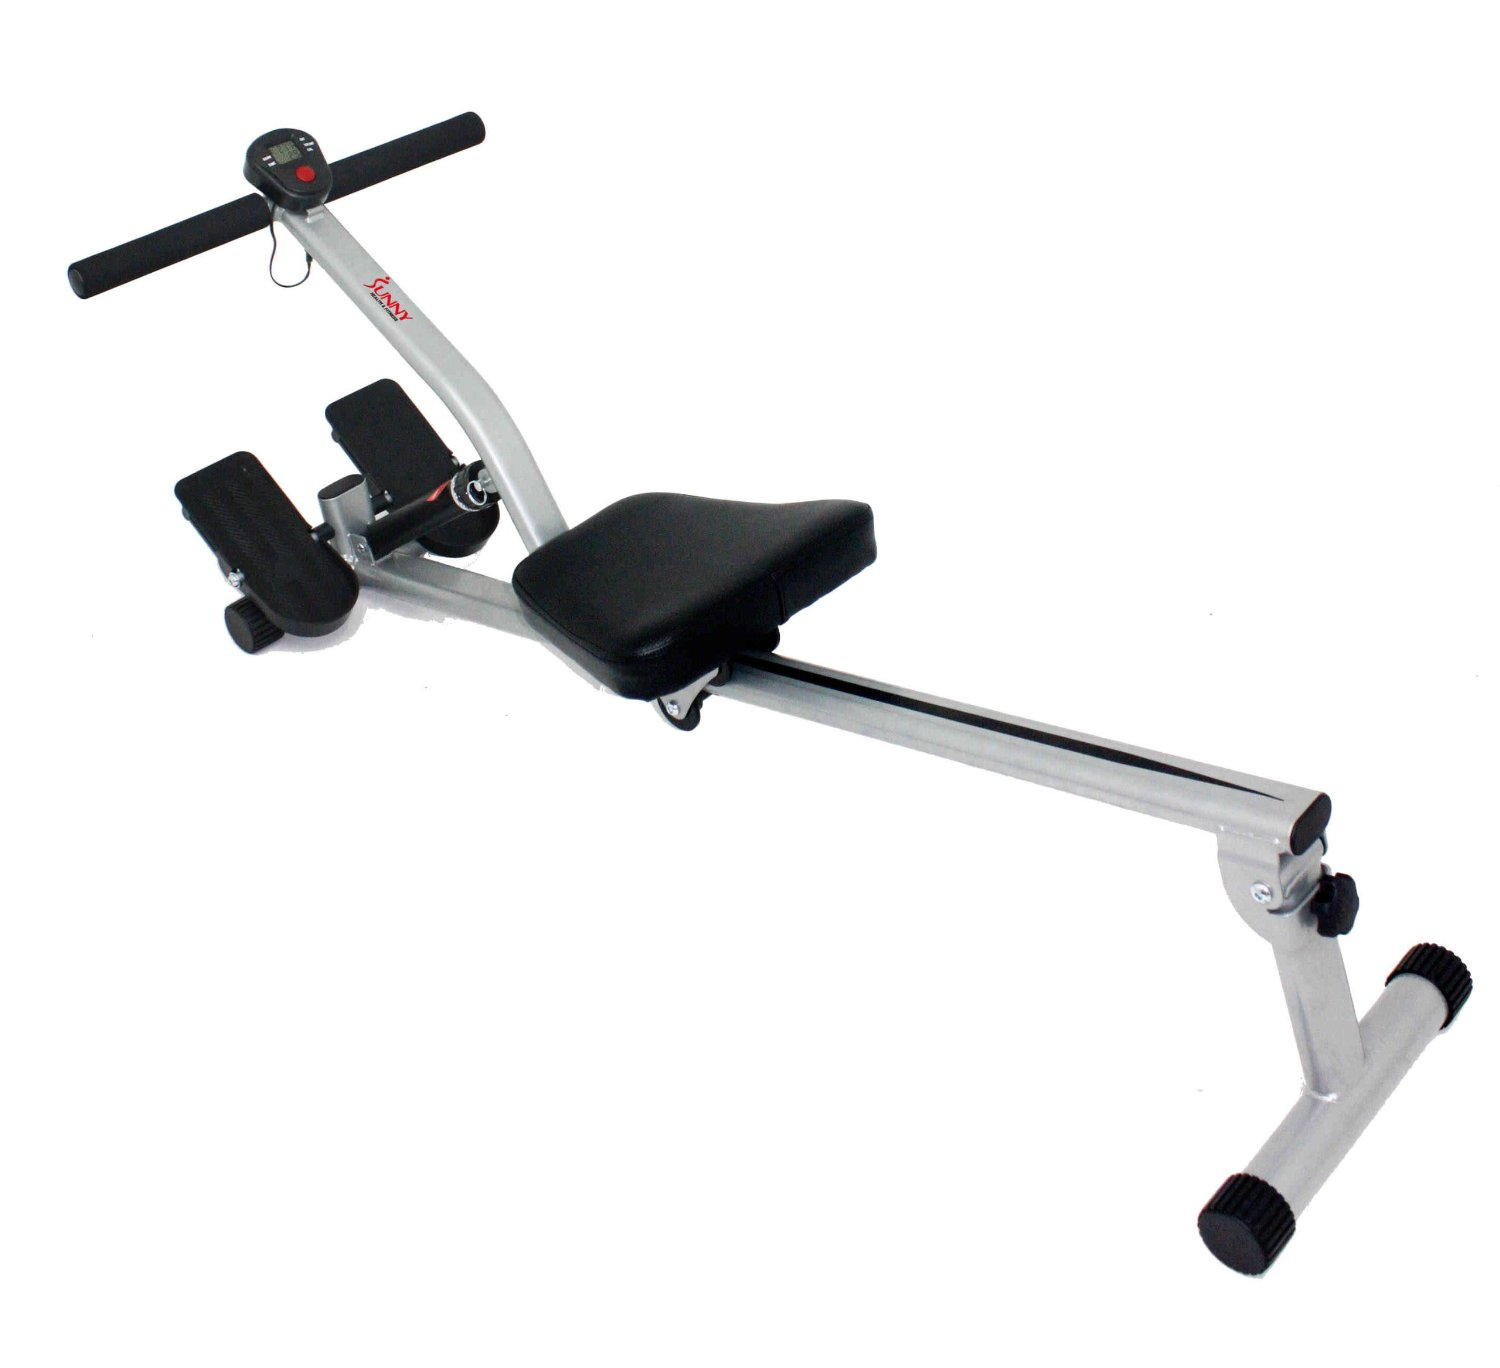 Sunny Health and Fitness SF-RW1205 Rowing Machine Review